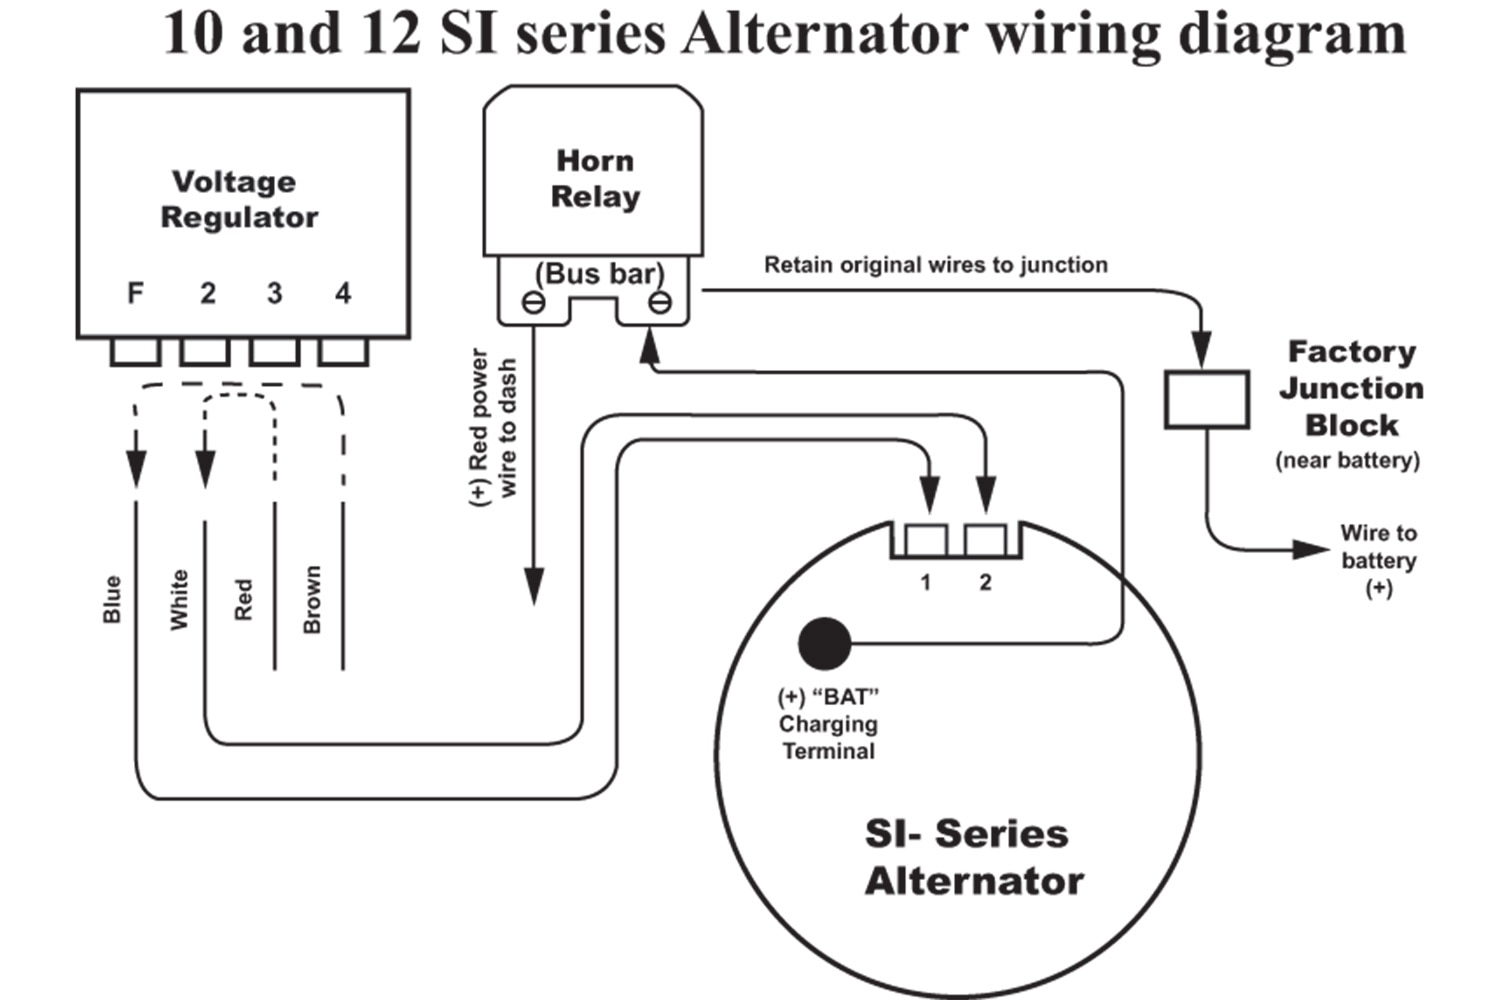 Lt1 Swap Alt Wiring Diagram Diagrams Harness Cs130 Alternator Library Rh 62 Yoobi De 95